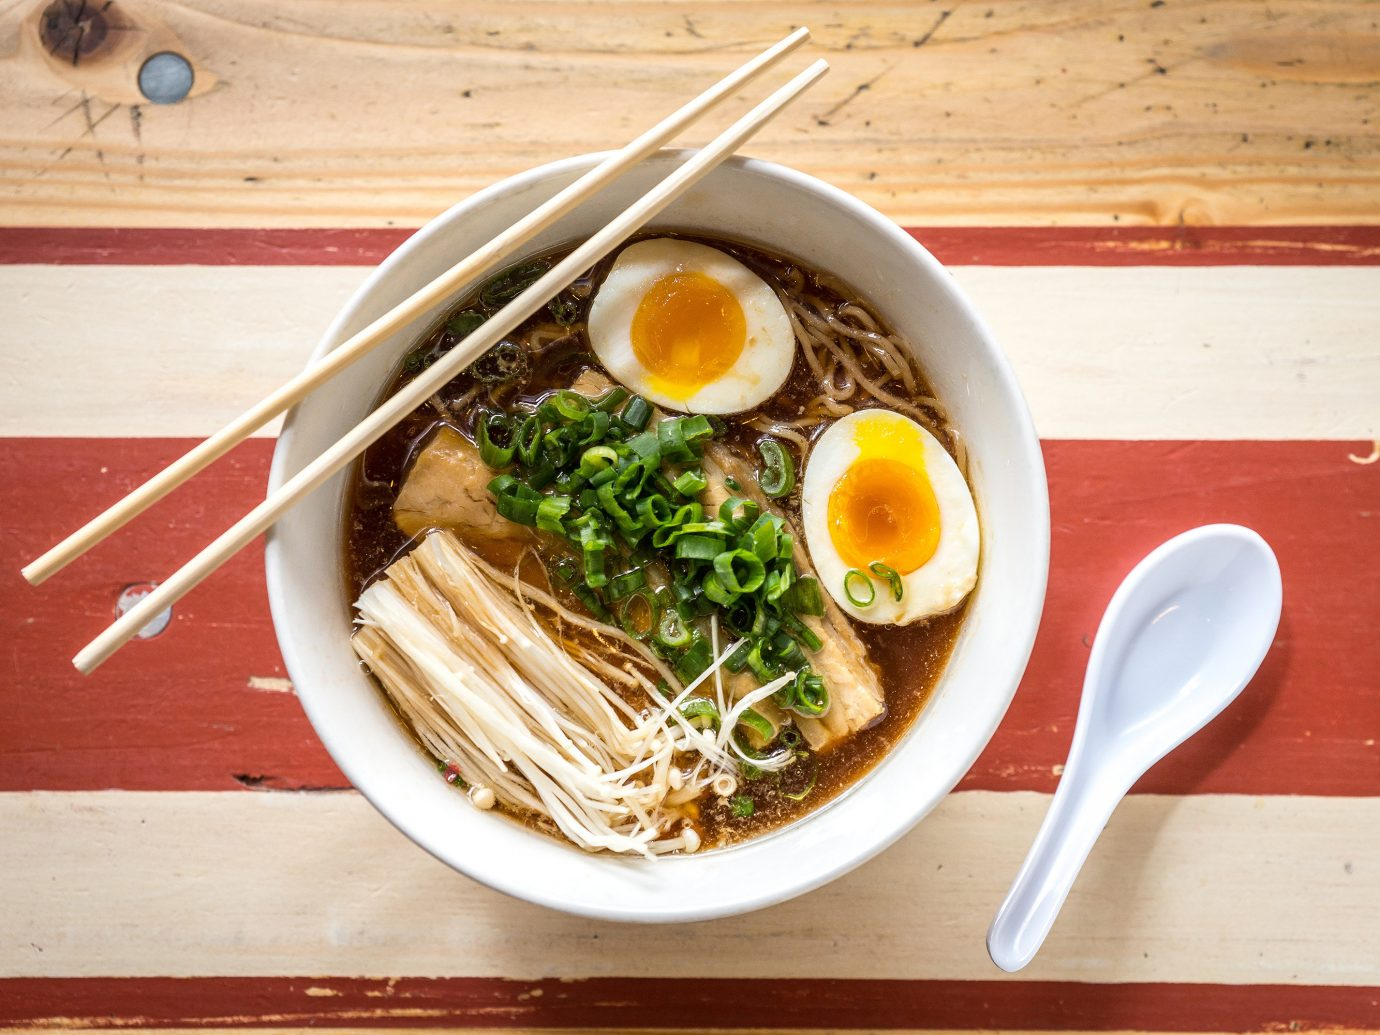 Trip Ideas table food plate dish cuisine noodle meal asian food lunch fish produce soba soup meat vegetable